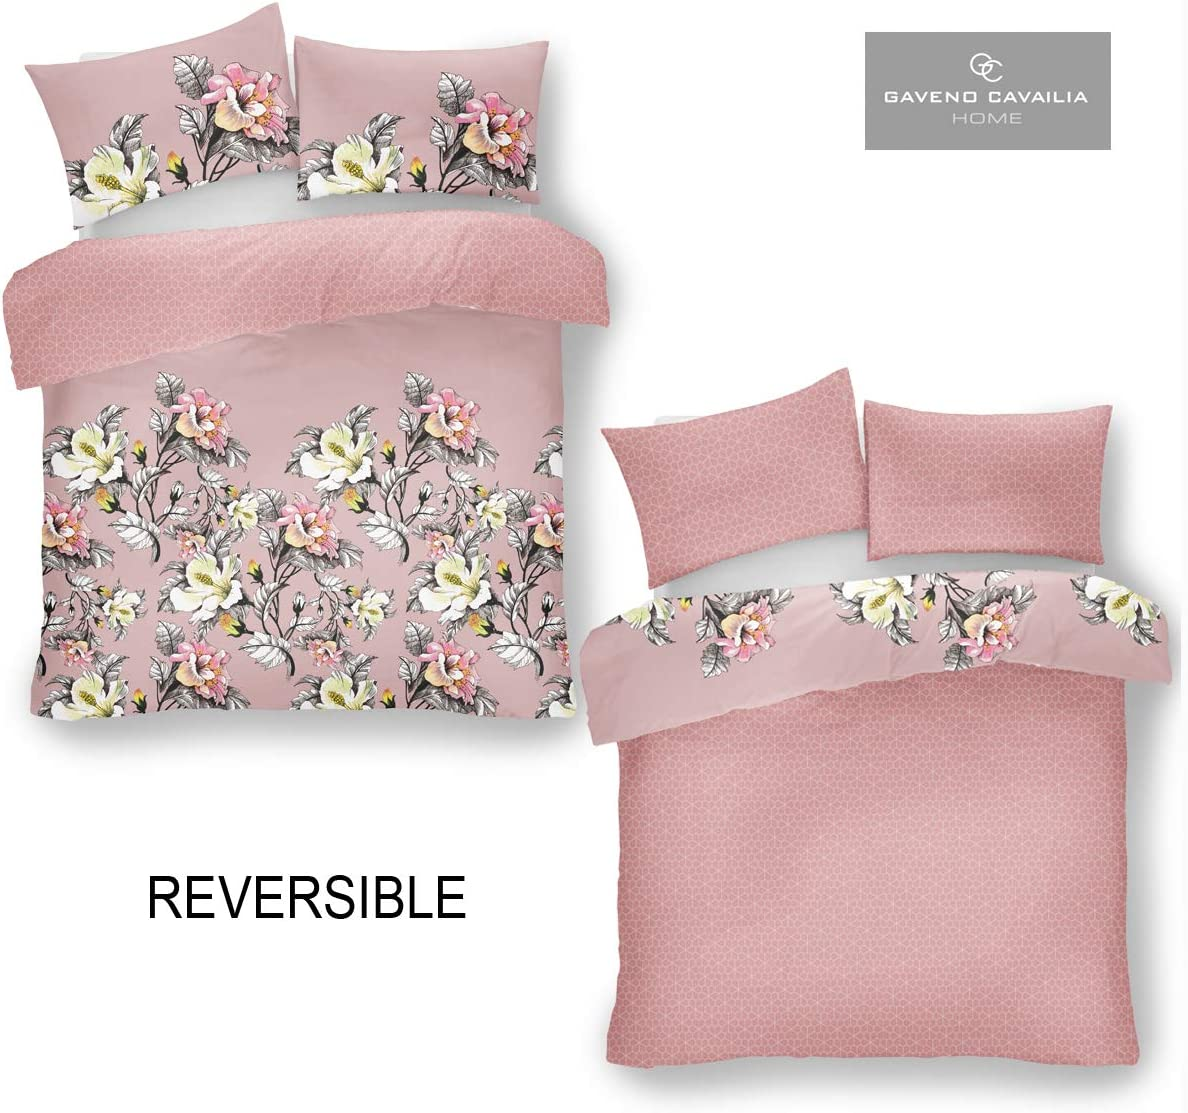 Polyester-Cotton Double Gaveno Cavailia Luxurious Eden Bed Set with Duvet Cover and Pillow Case Pink